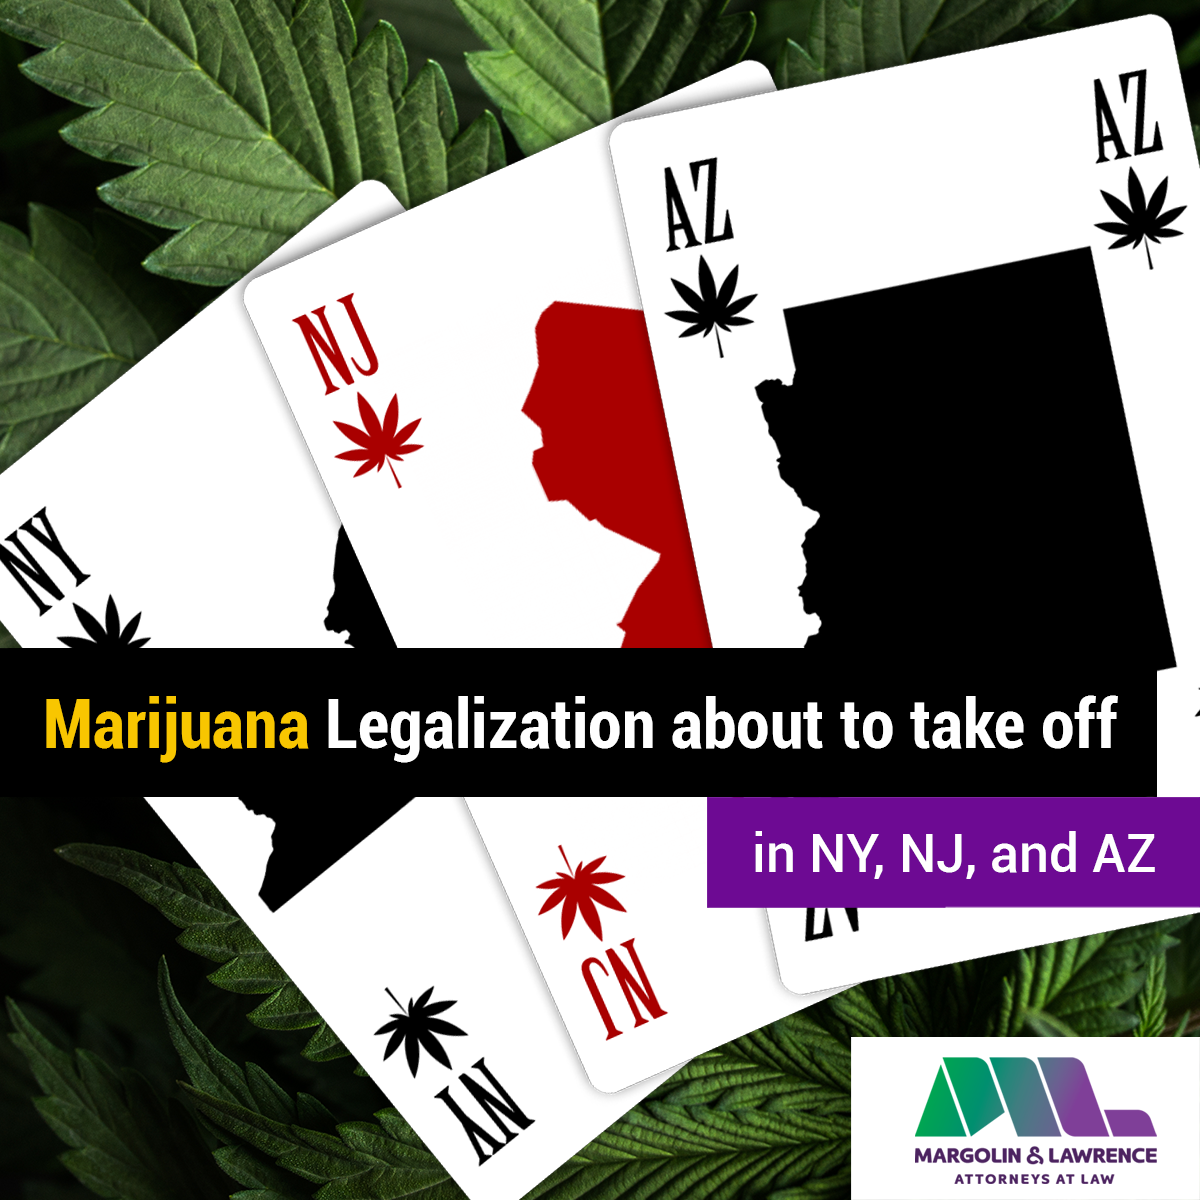 Marijuana Legalization about to take off in NY, NJ, and AZ